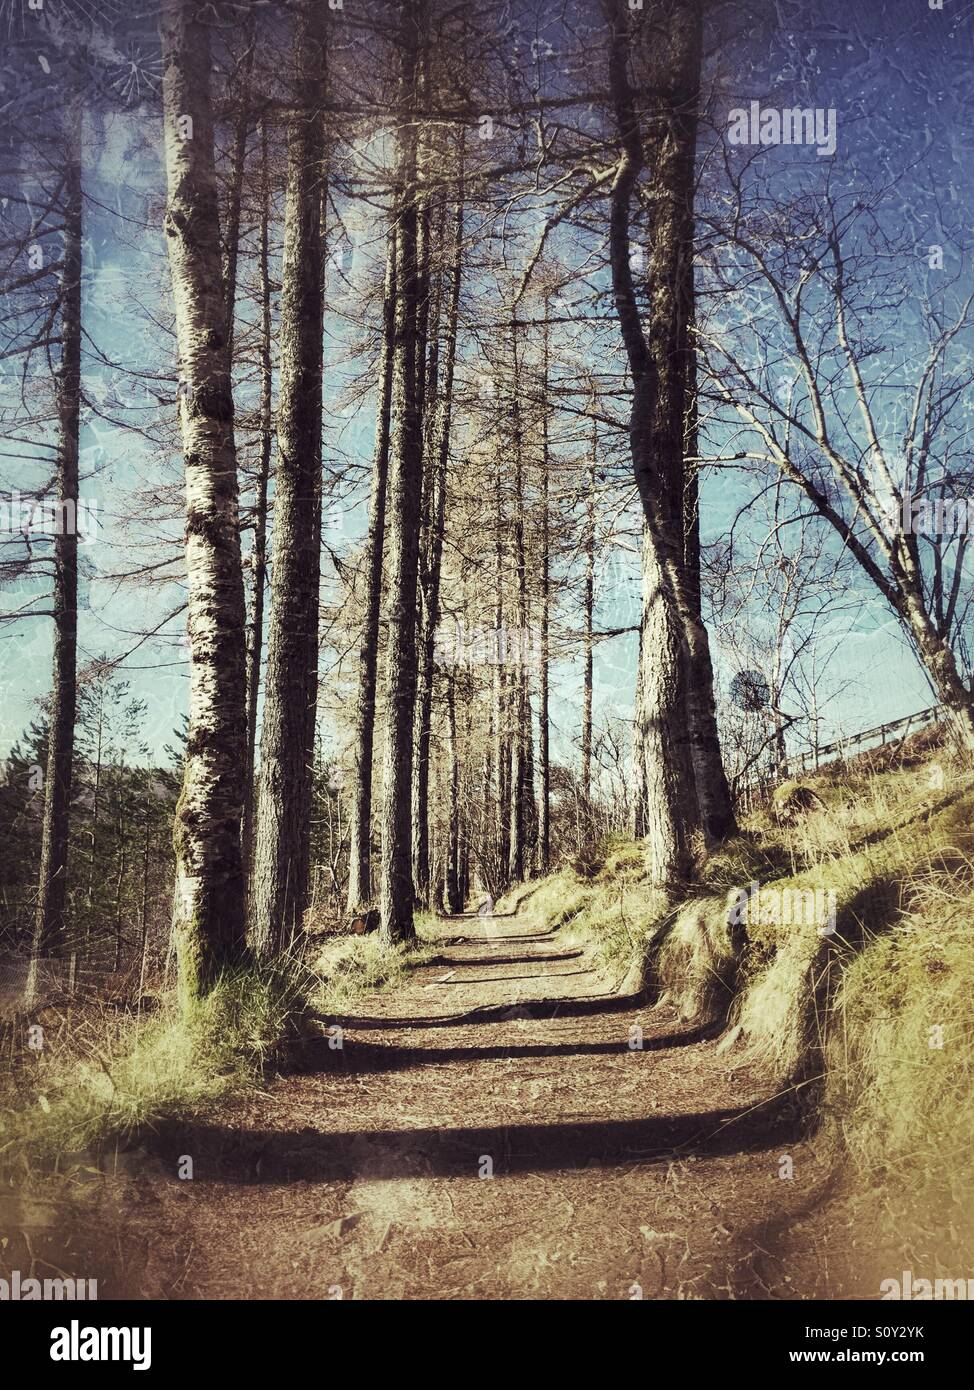 Dream like path through a forest of tall trees - Stock Image